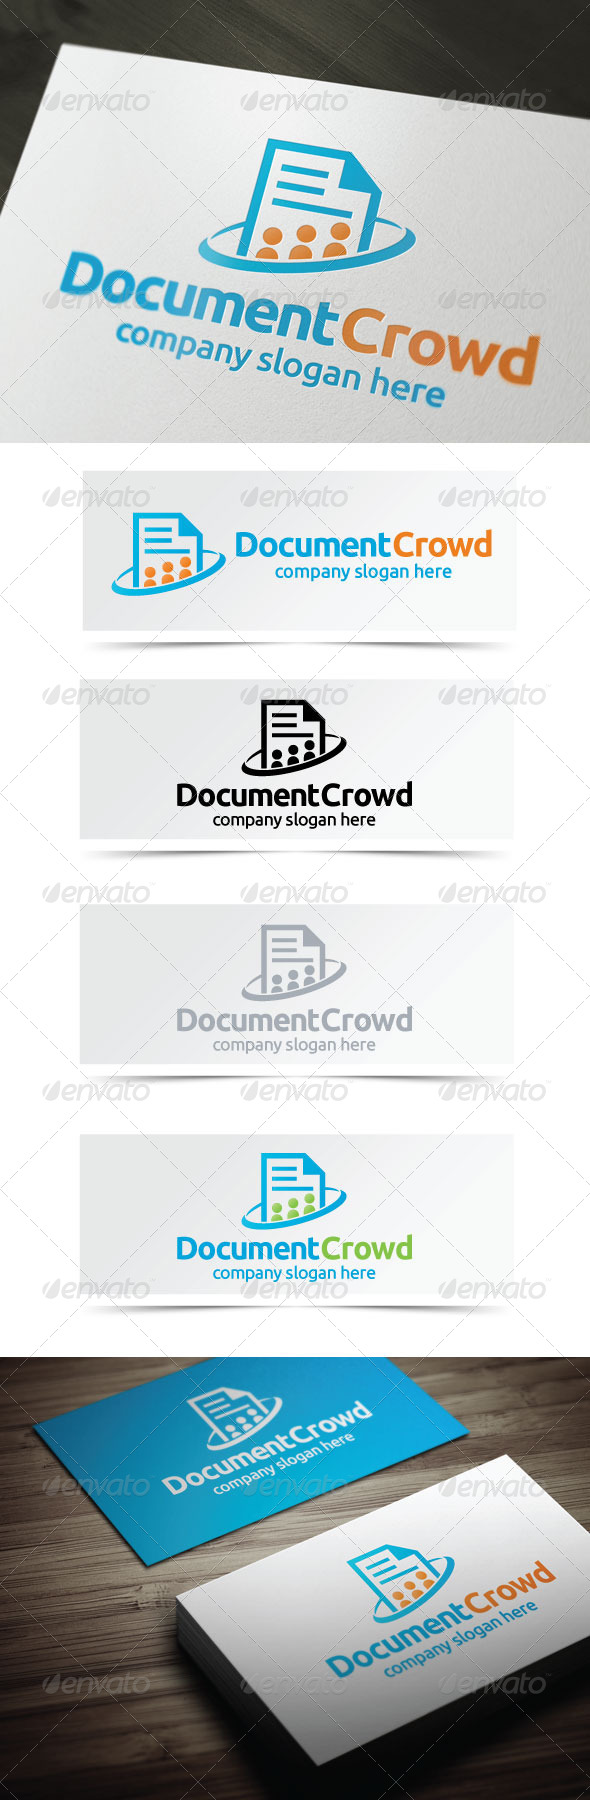 GraphicRiver Document Crowd 4311472